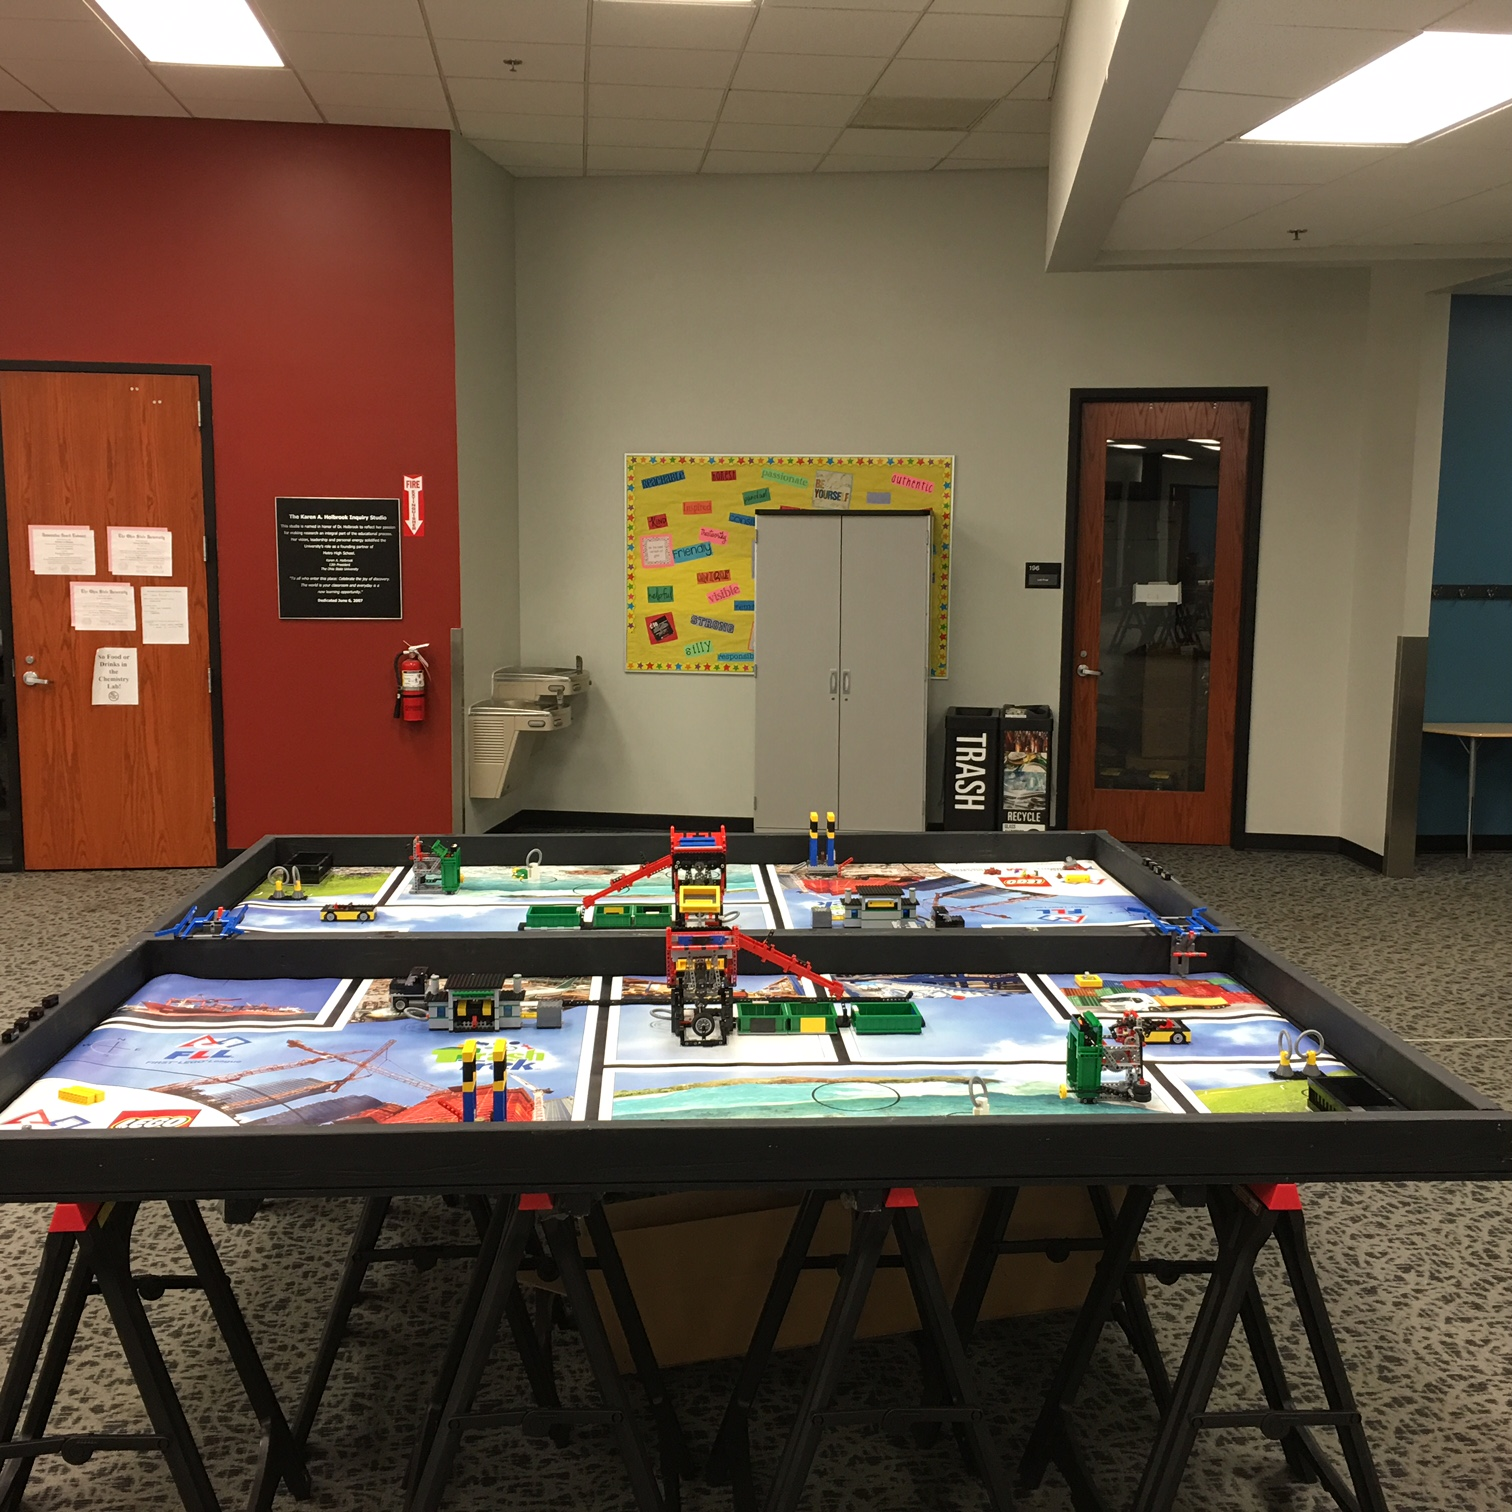 File:Practice Boards for First Lego League Robotics